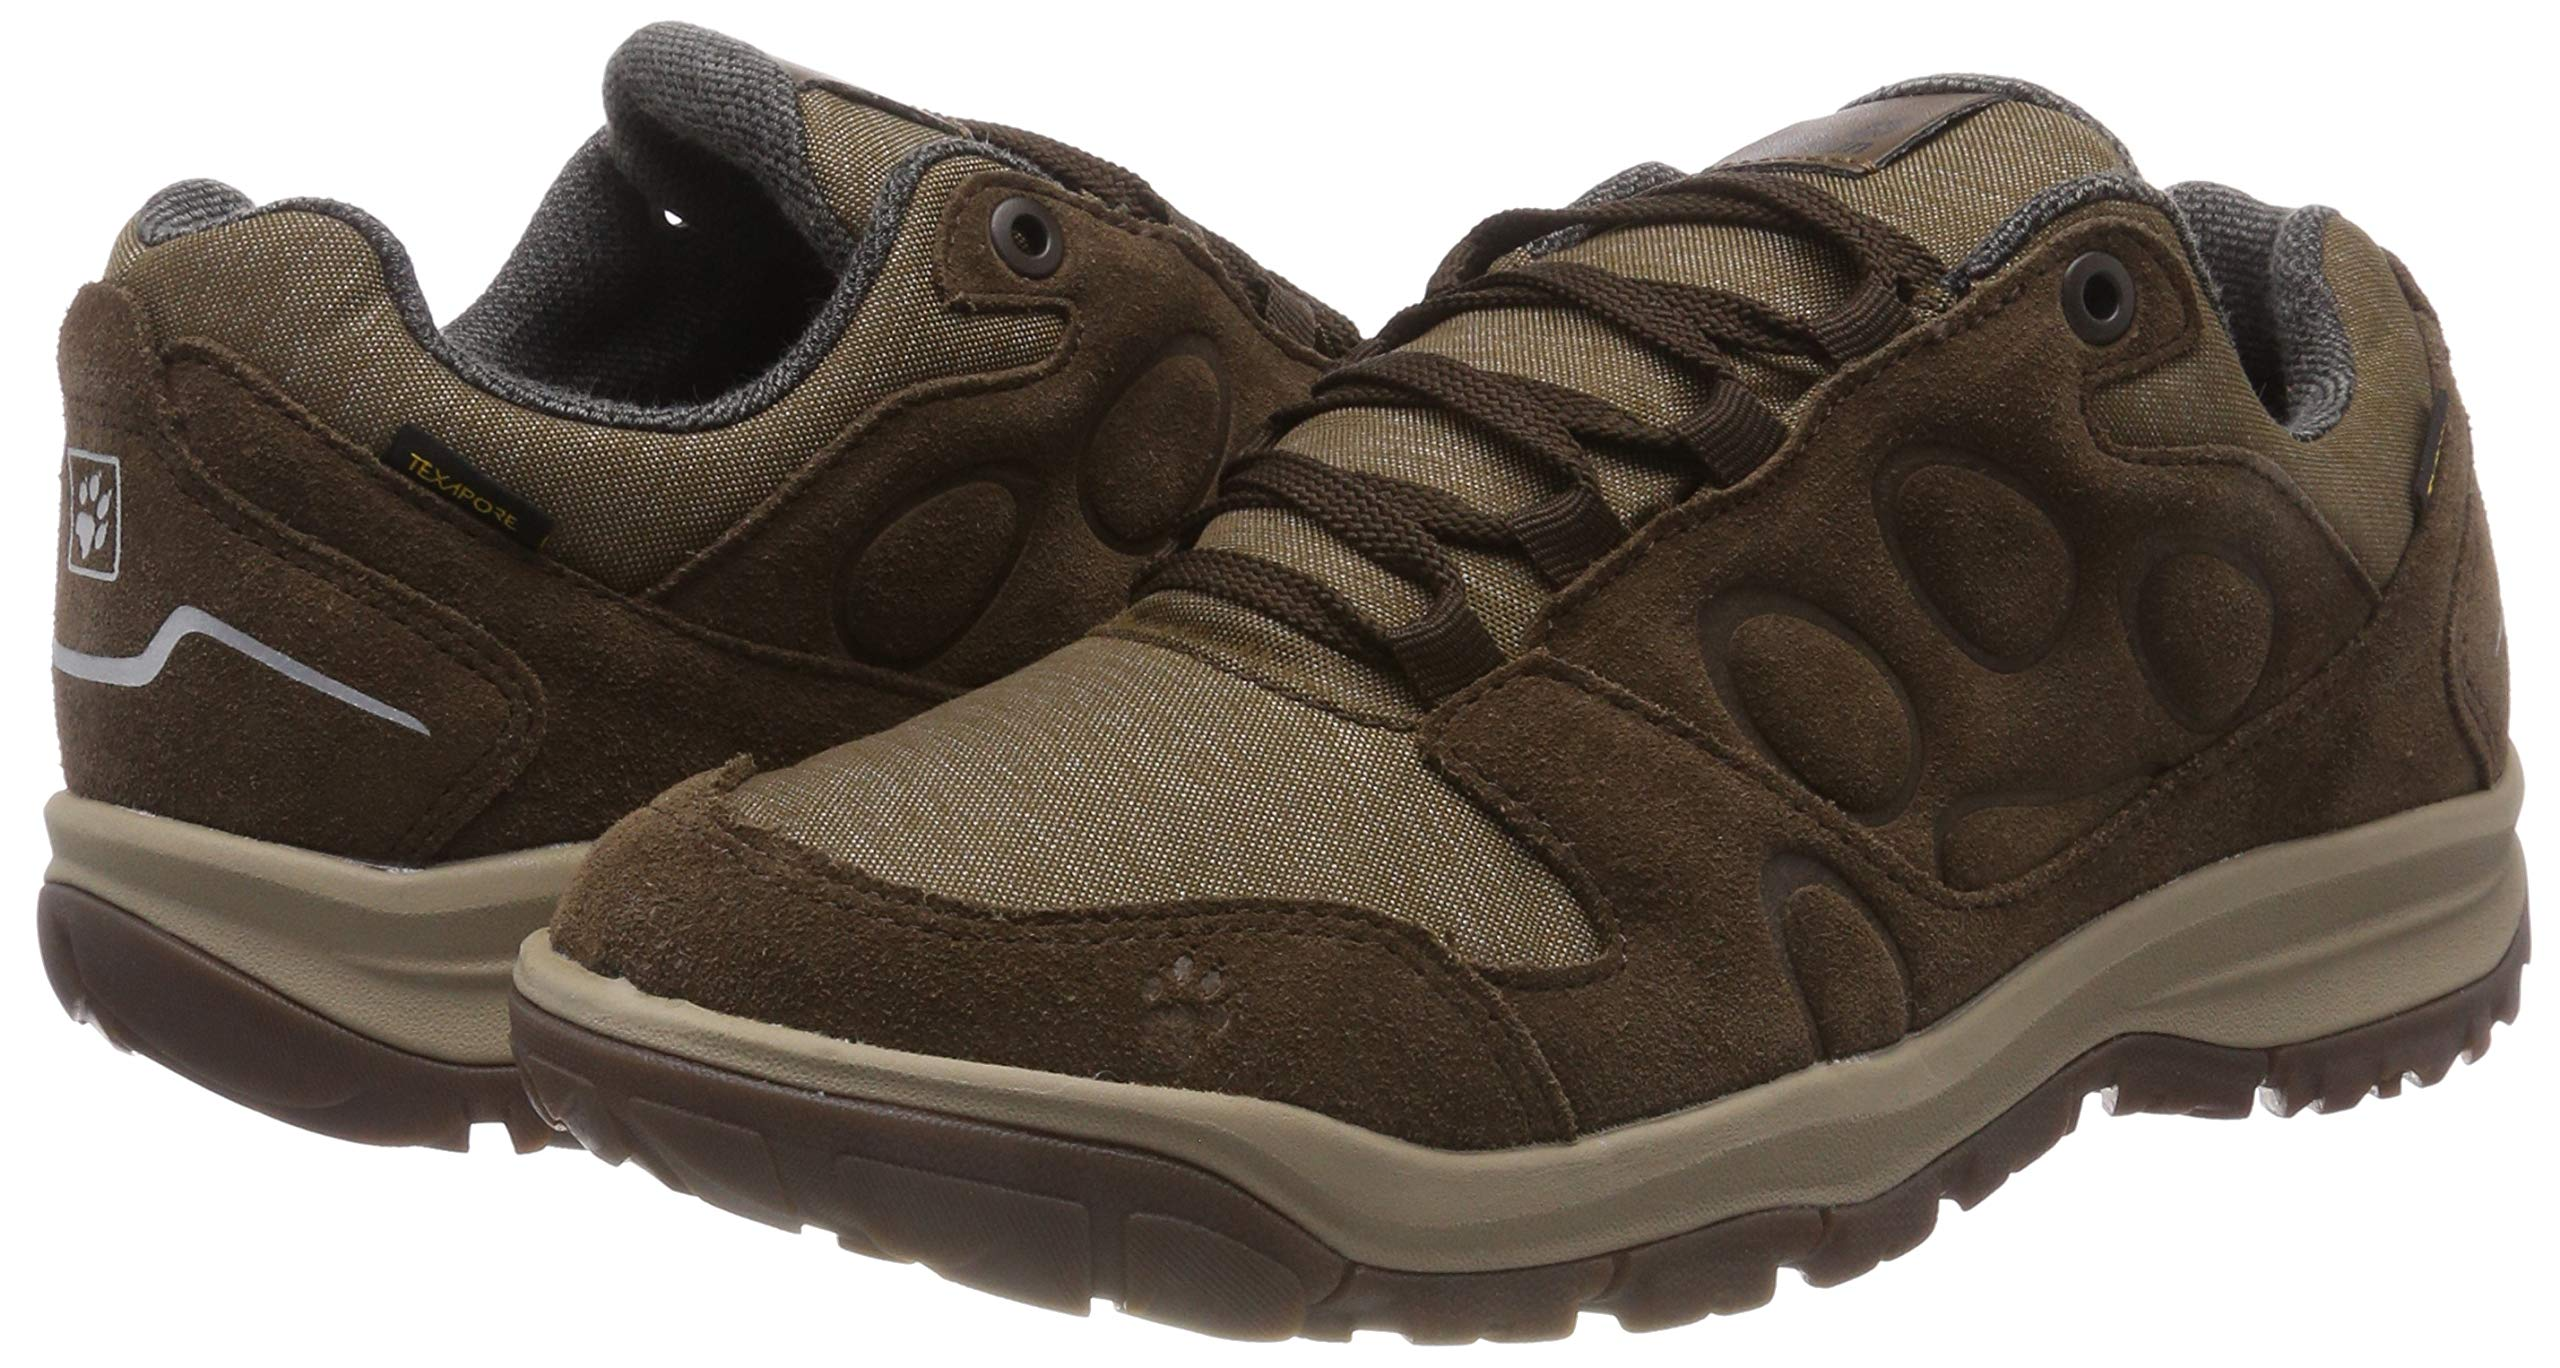 Jack Wolfskin Men's Vancouver Texapore Low M Rise Hiking Shoes 5